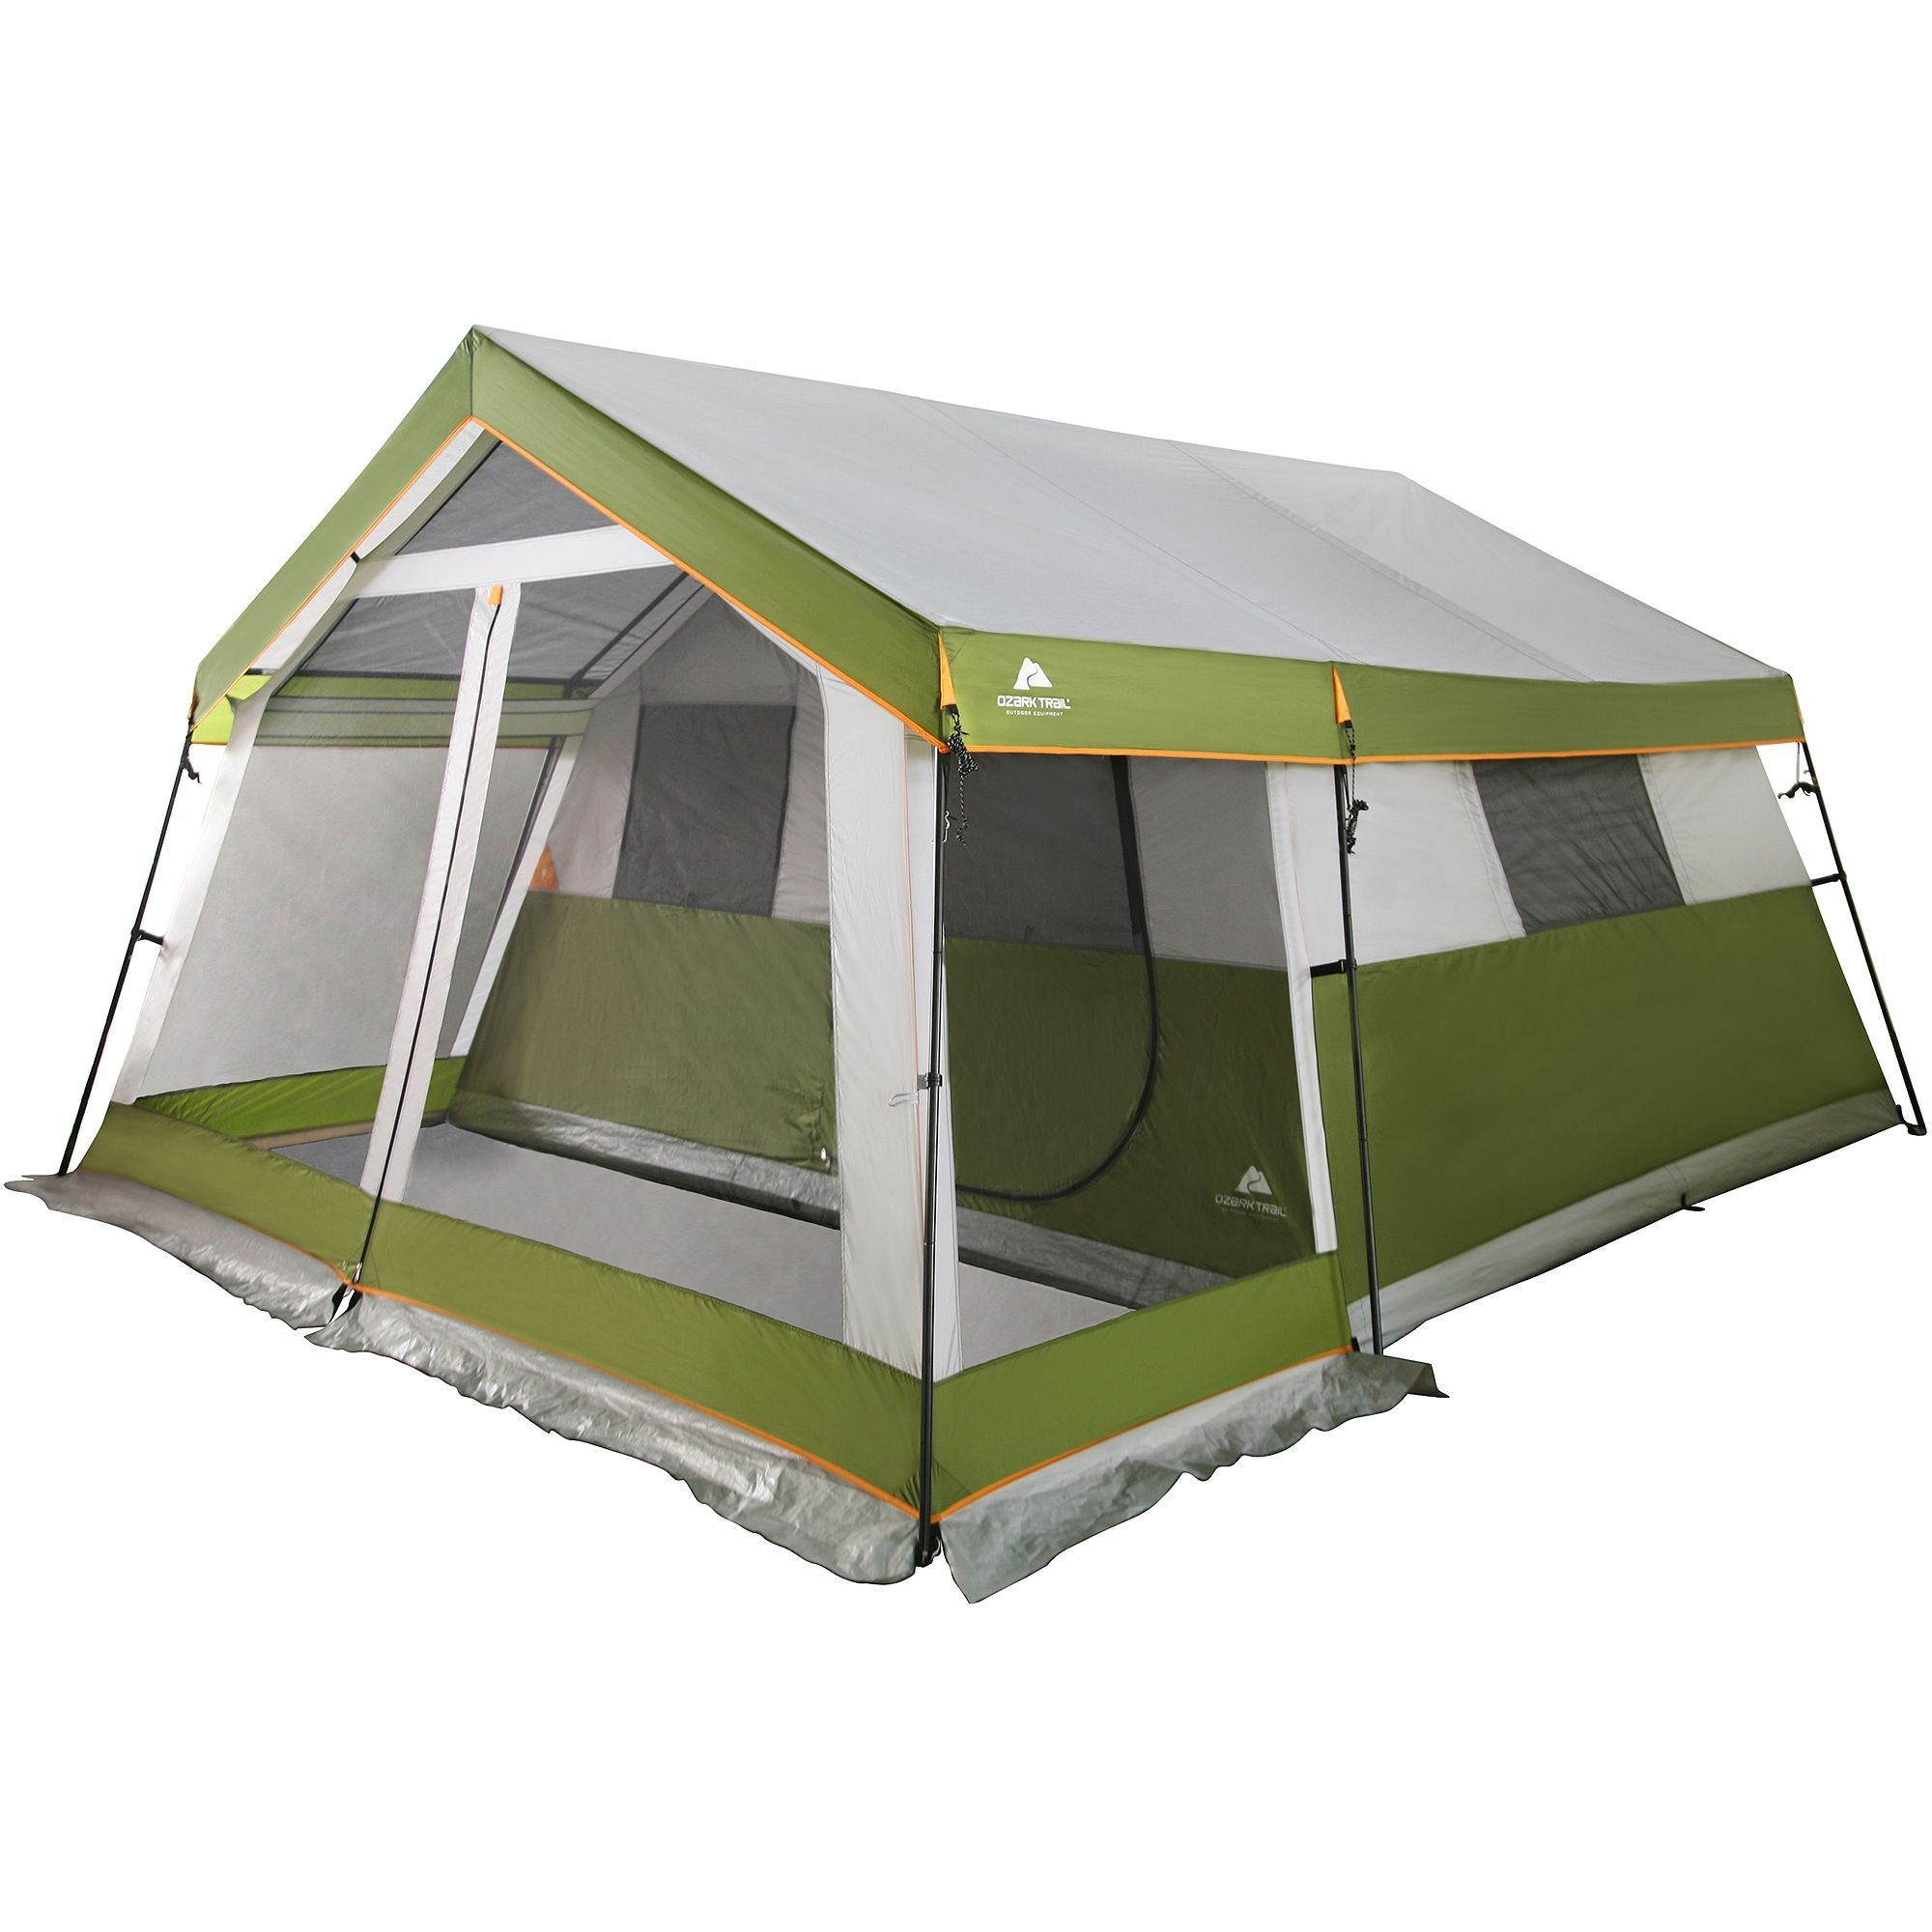 Ozark Trail 12-Person Cabin Tent with Screen Porch - Walmart.com  sc 1 st  Pinterest & Ozark Trail 12-Person Cabin Tent with Screen Porch - Walmart.com ...